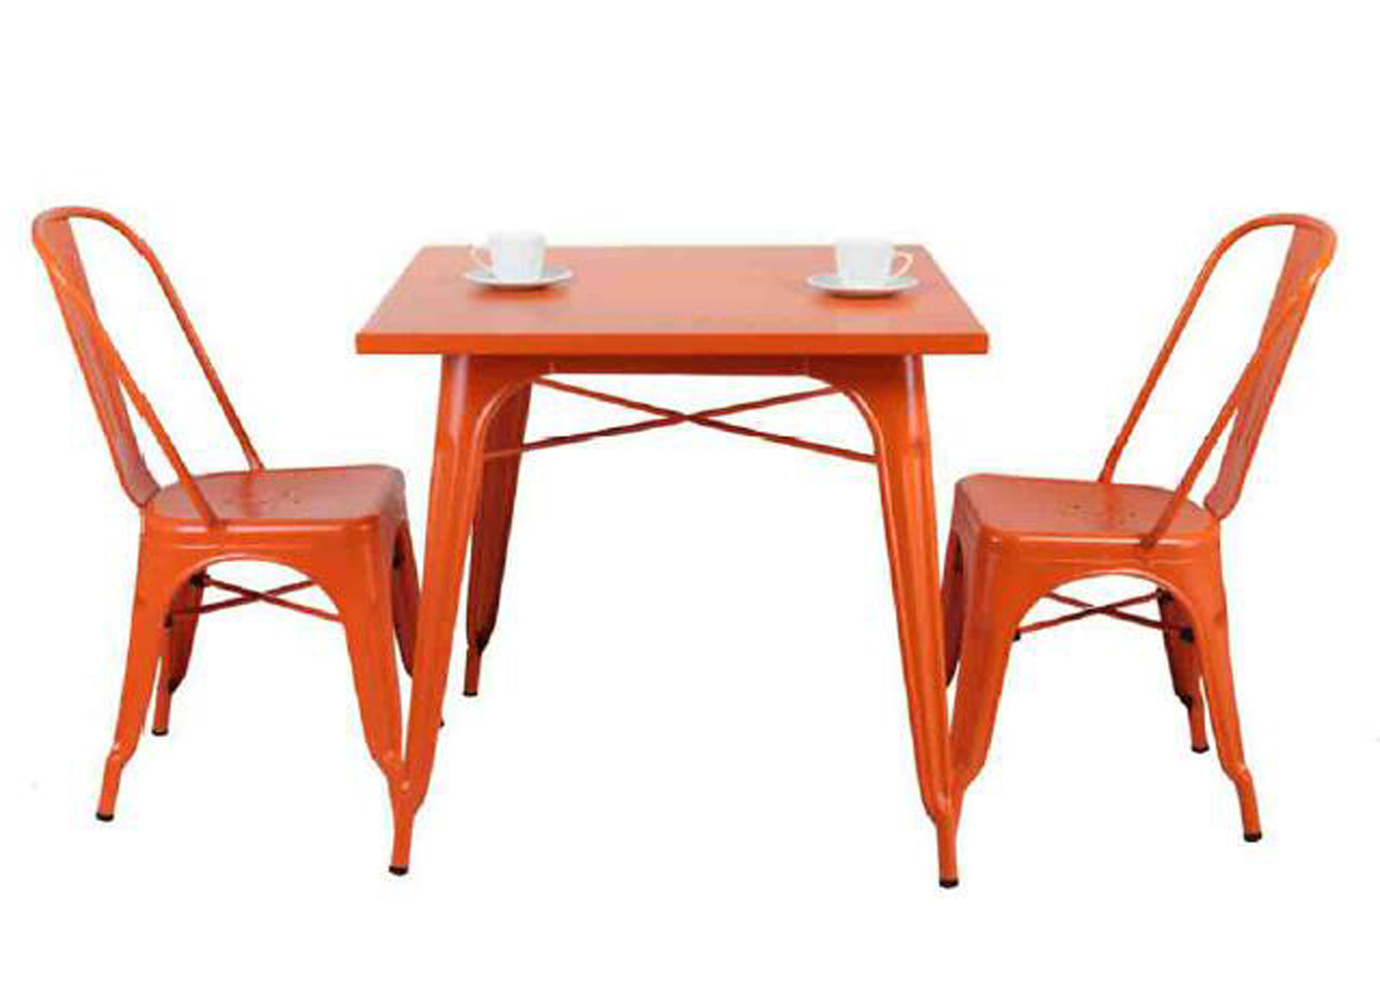 China Restaurant Tolix Marais Table And Chair Dining Furniture   China  Tolix Chair, Tolix Marais Dining Furniture